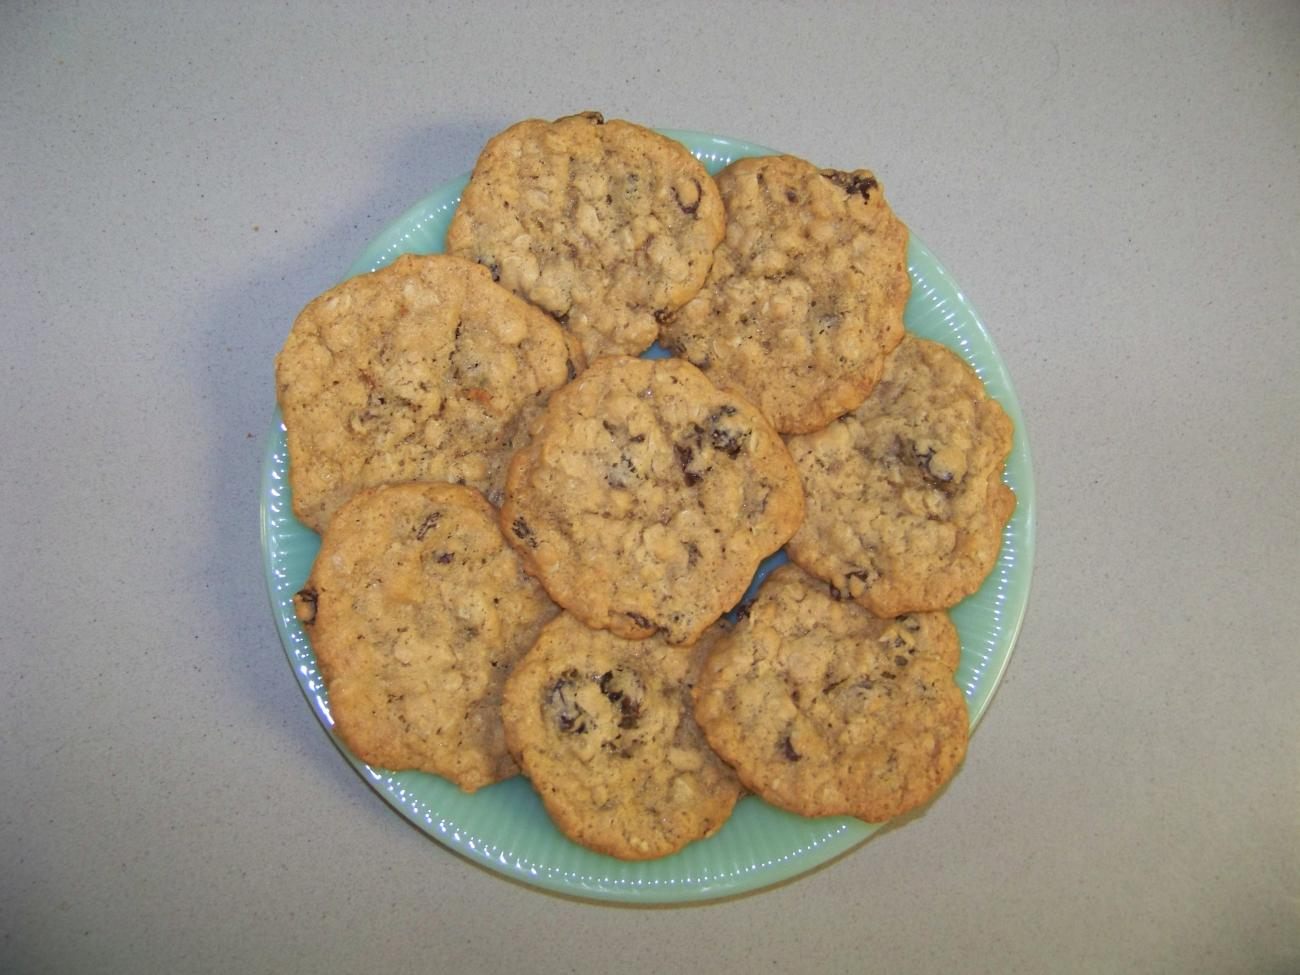 Recipe for Sandy's Oatmeal Raisin Cookies